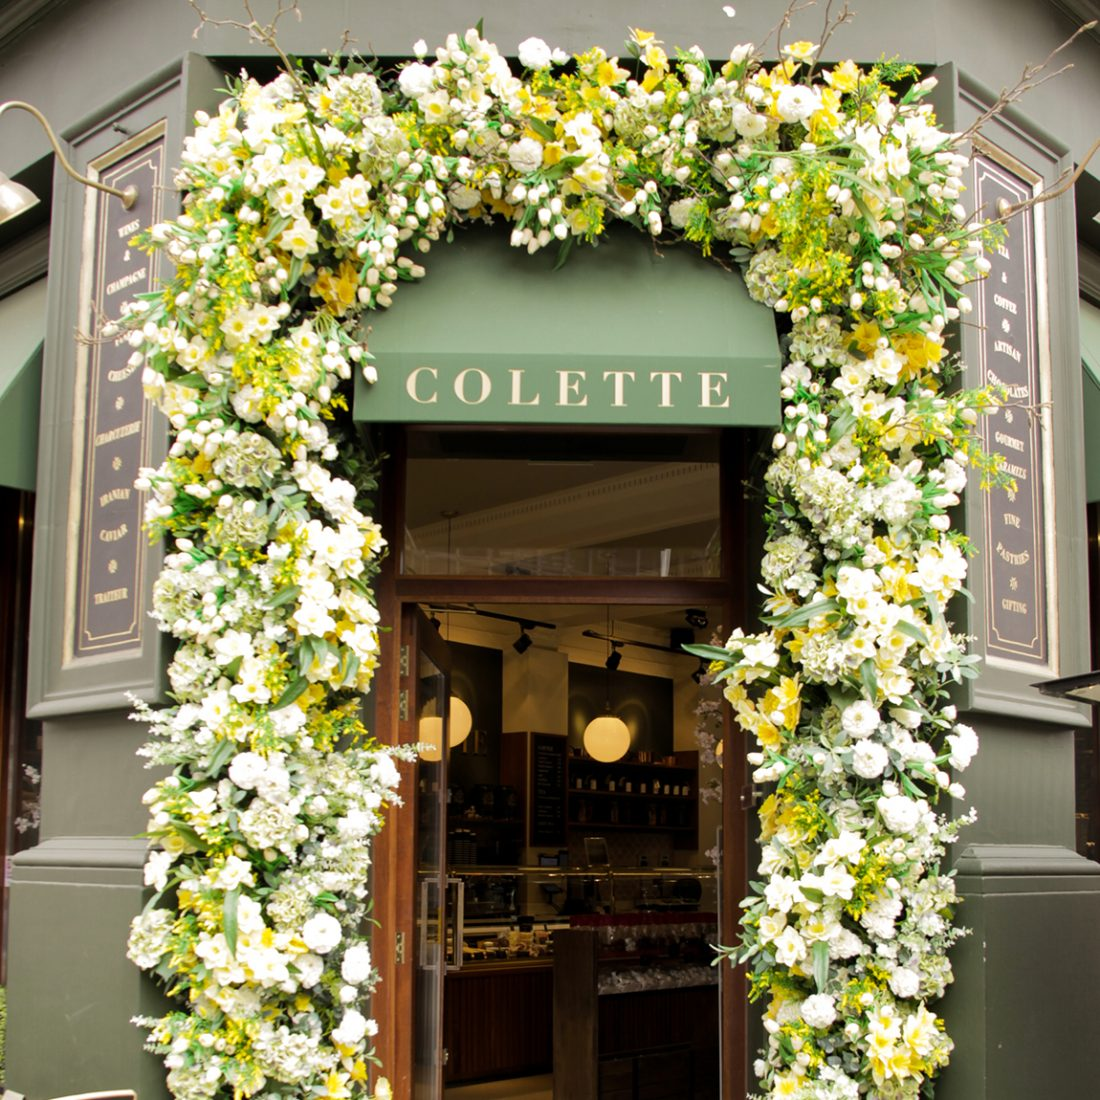 Bright yellow and green flower arch over the doorway of Colette restaurant and bar. The walls are a dark green and logo golden